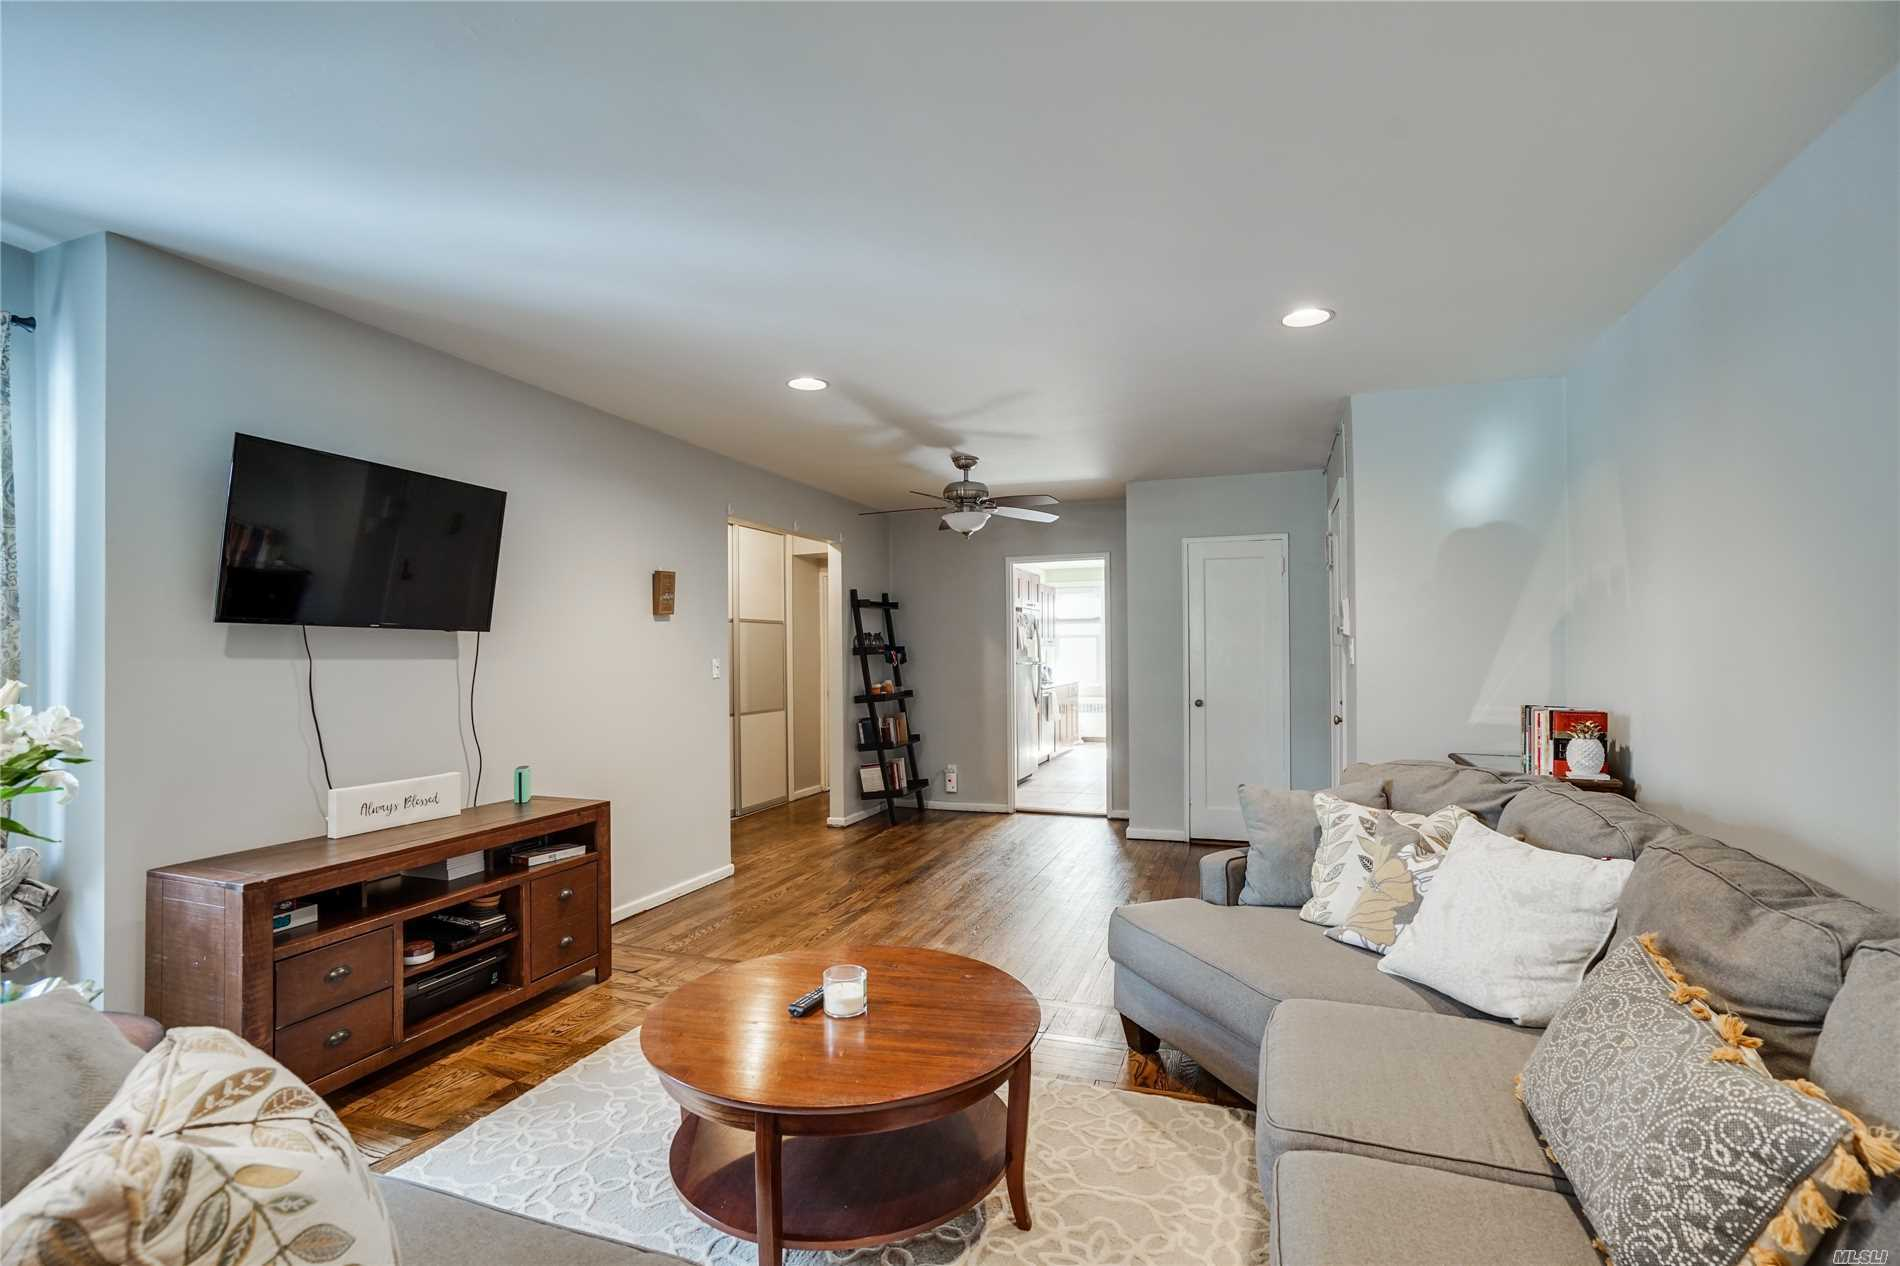 Sale may be subject to term & conditions of an offering plan. Amazing Unit, With Brand New Hardwood Floors. Amazing Brand New Custom Closets! Newly Updated Kitchen Cabinets and Counter Tops. Close to All Shopping and Restaurants! LIRR 35 Minutes To Manhattan!